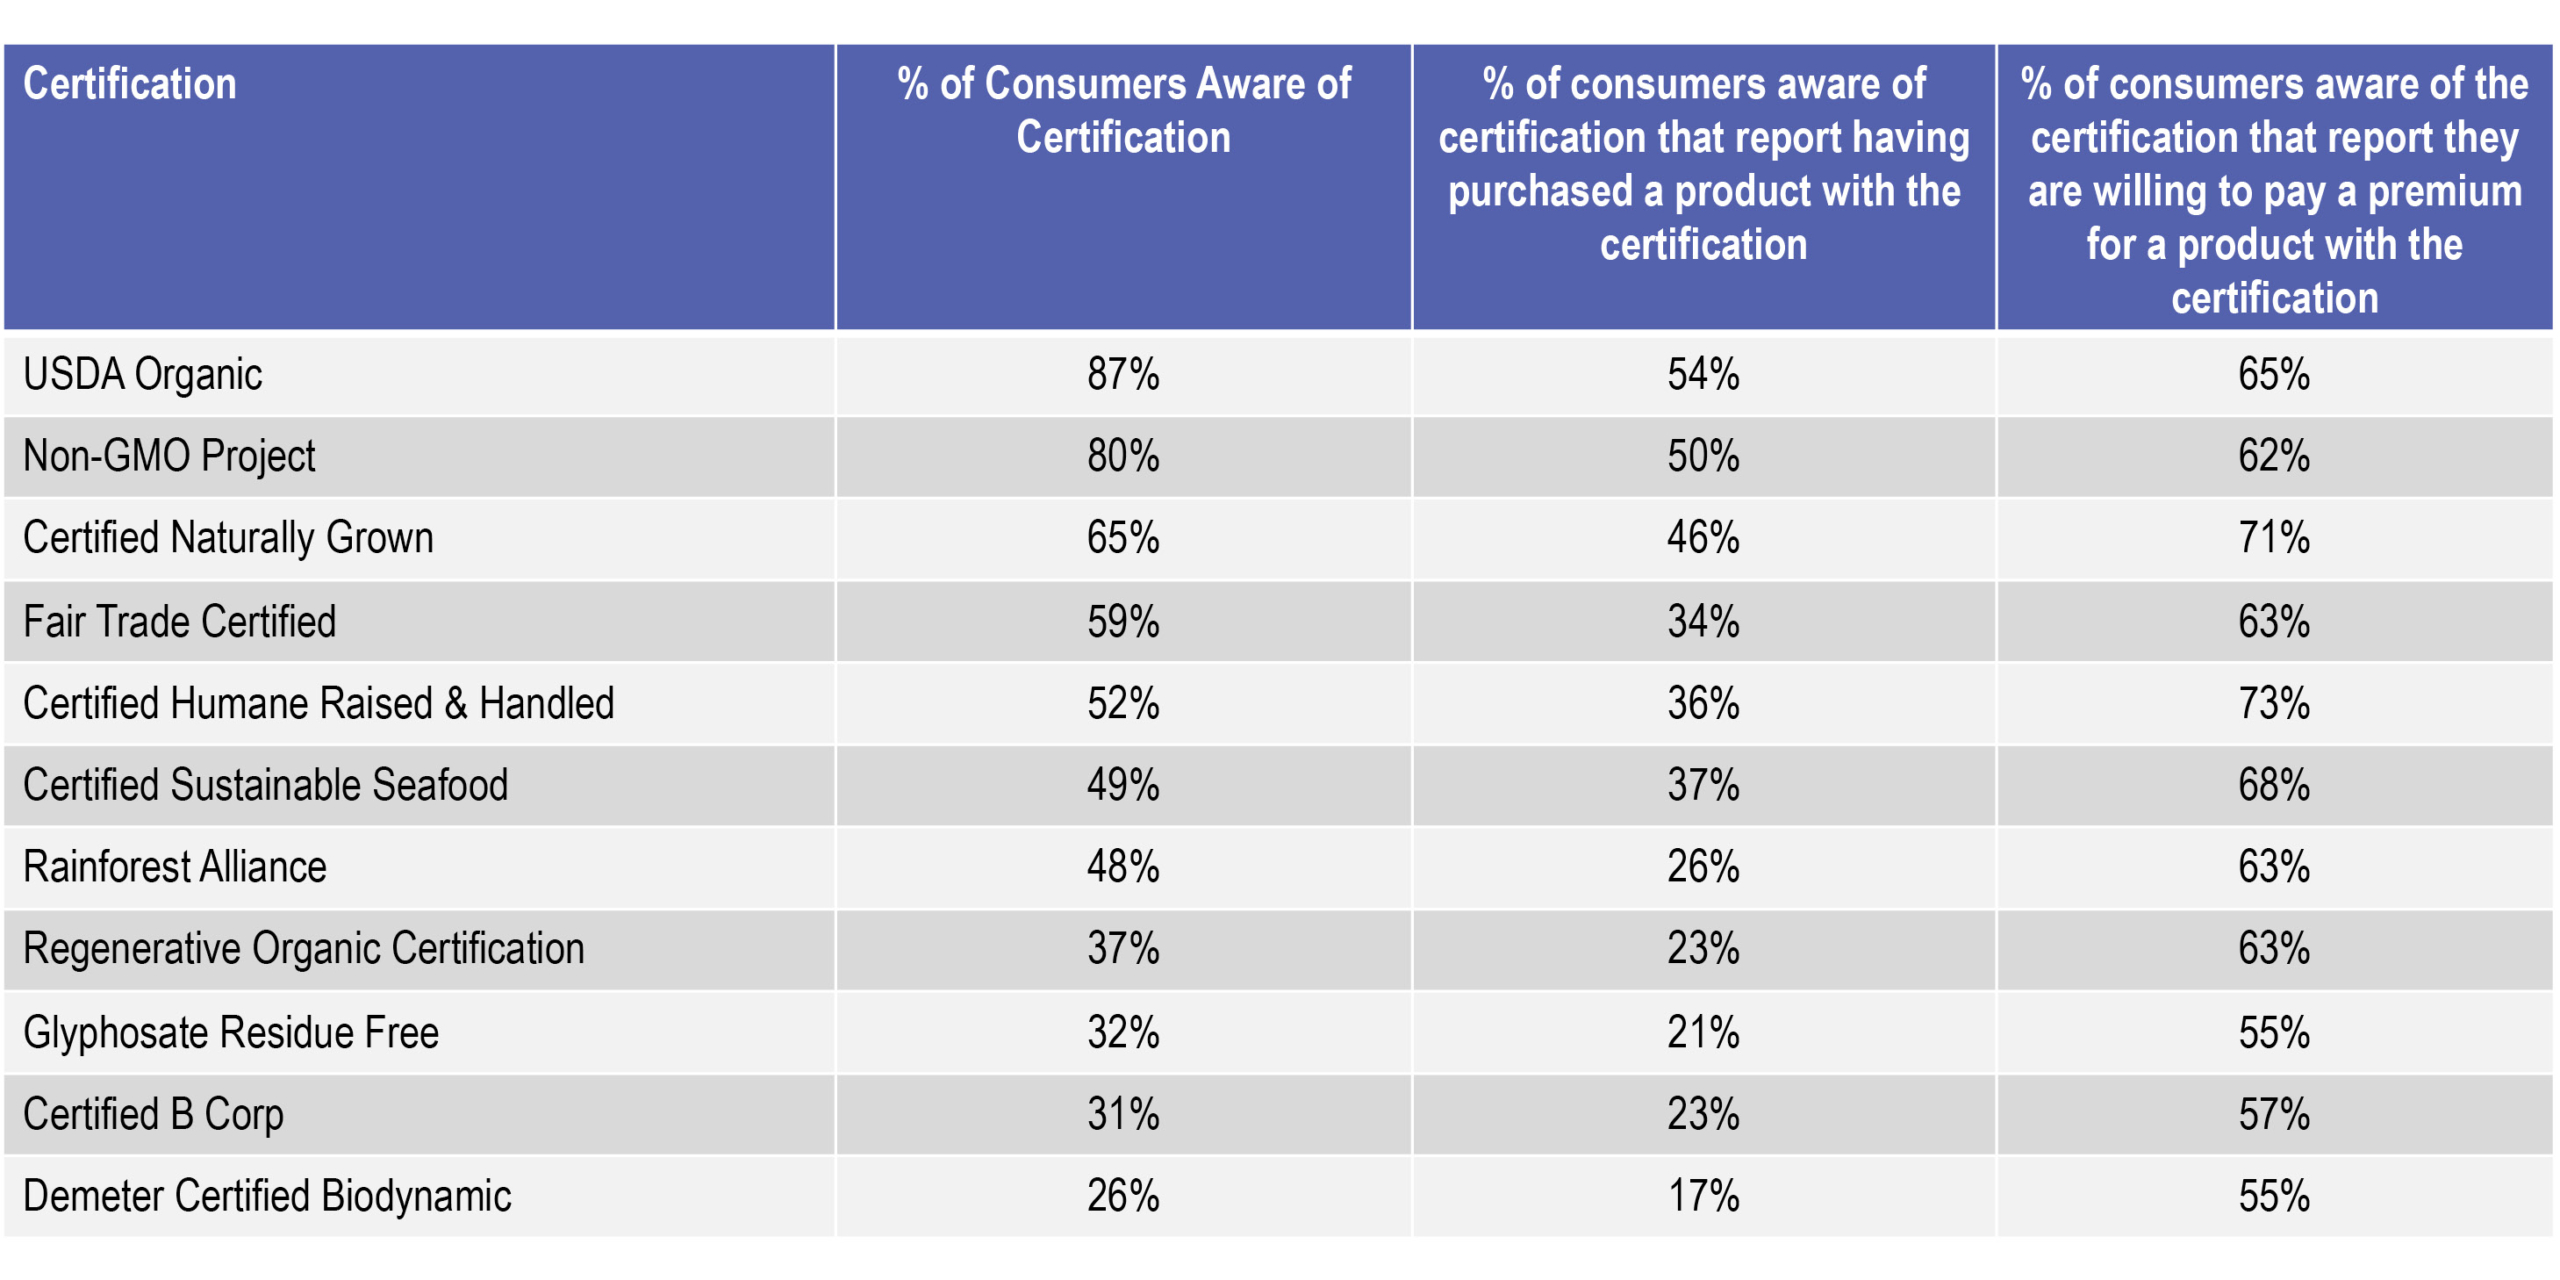 Food Certifications: Which Ones Resonate Most With Consumers?